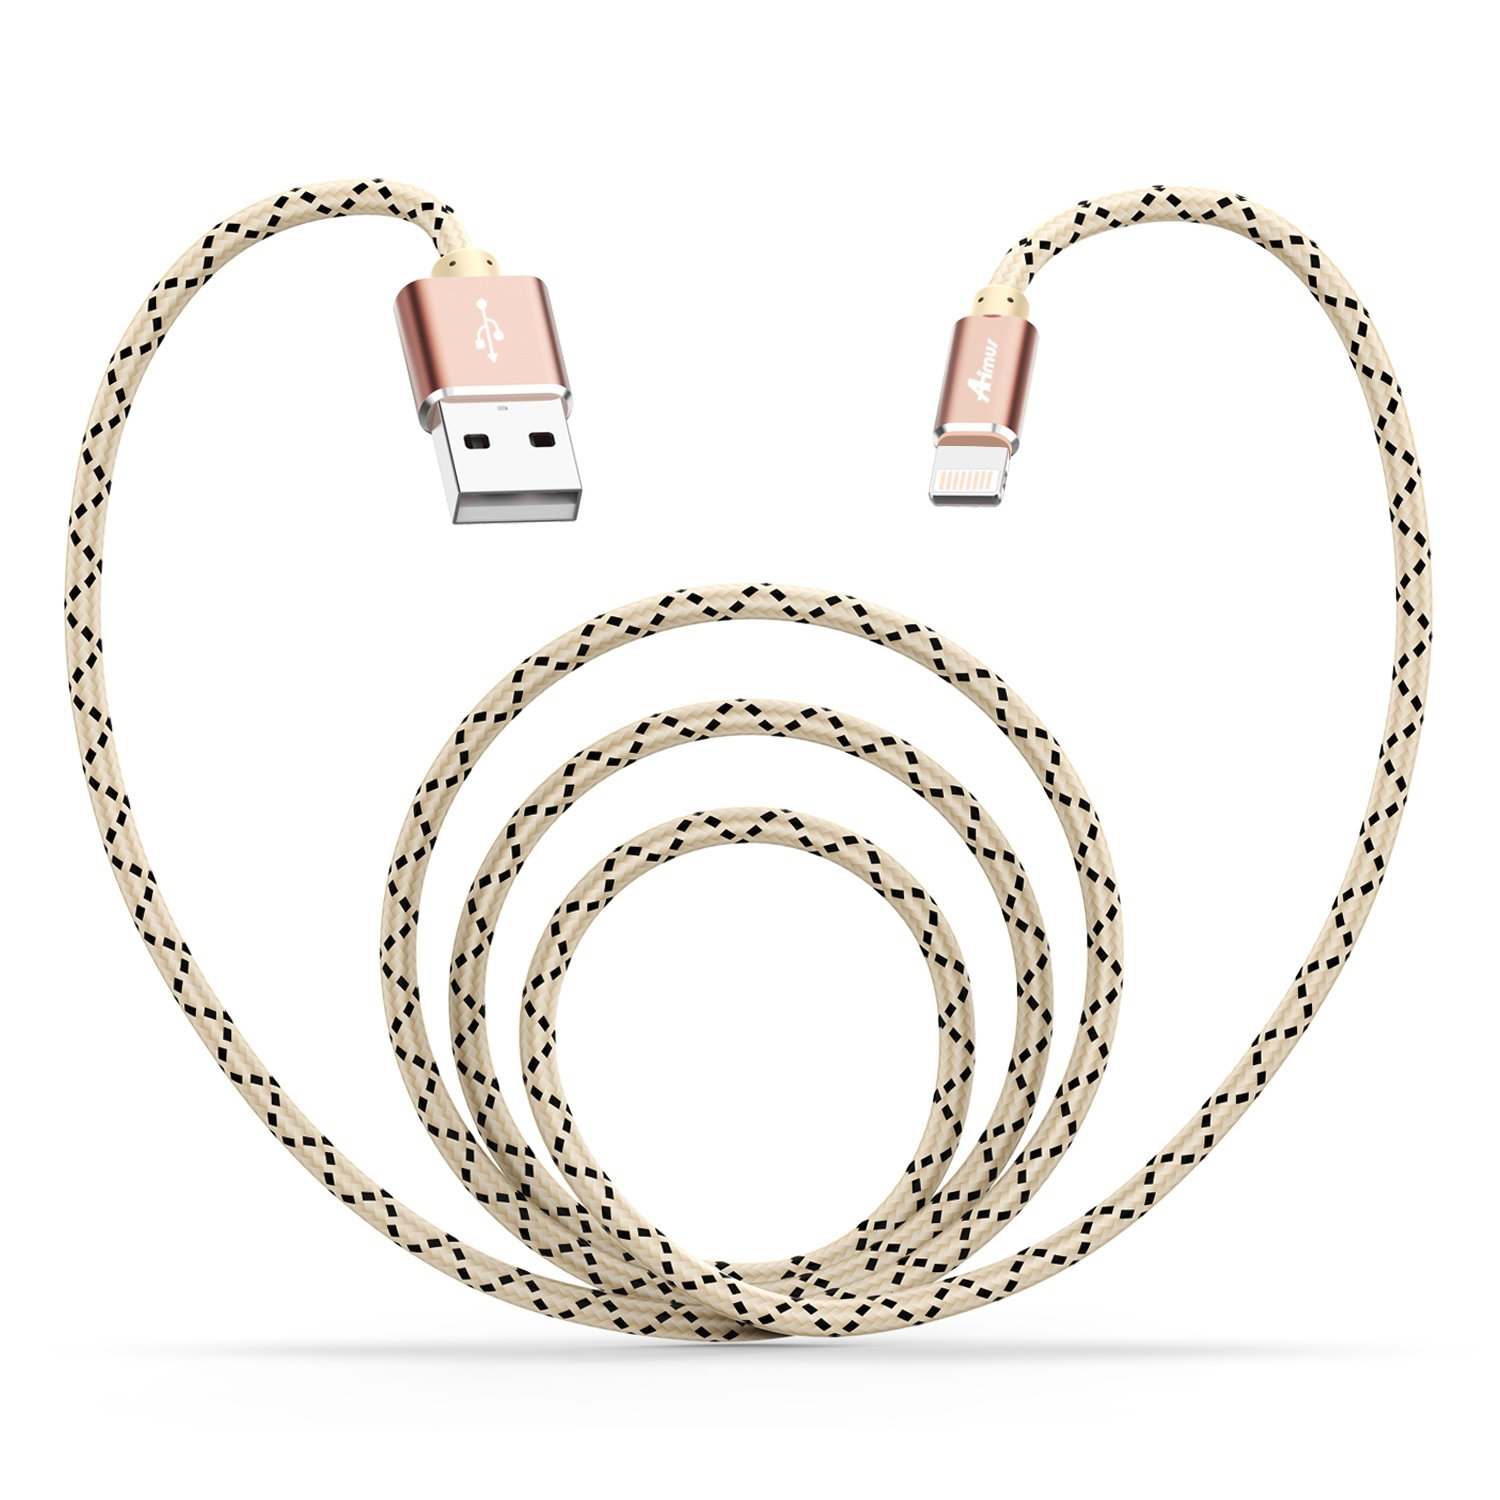 Lightning USB Cable, Aimus 6Ft Nylon Braided Fast Charging Cable Cord with Aluminum Housing for iPhone 7/7 Plus/6/6S/6 Plus/6S Plus/5/5S/5C/SE, iPad Mini 2 3 4 Air iPod and More, Gold